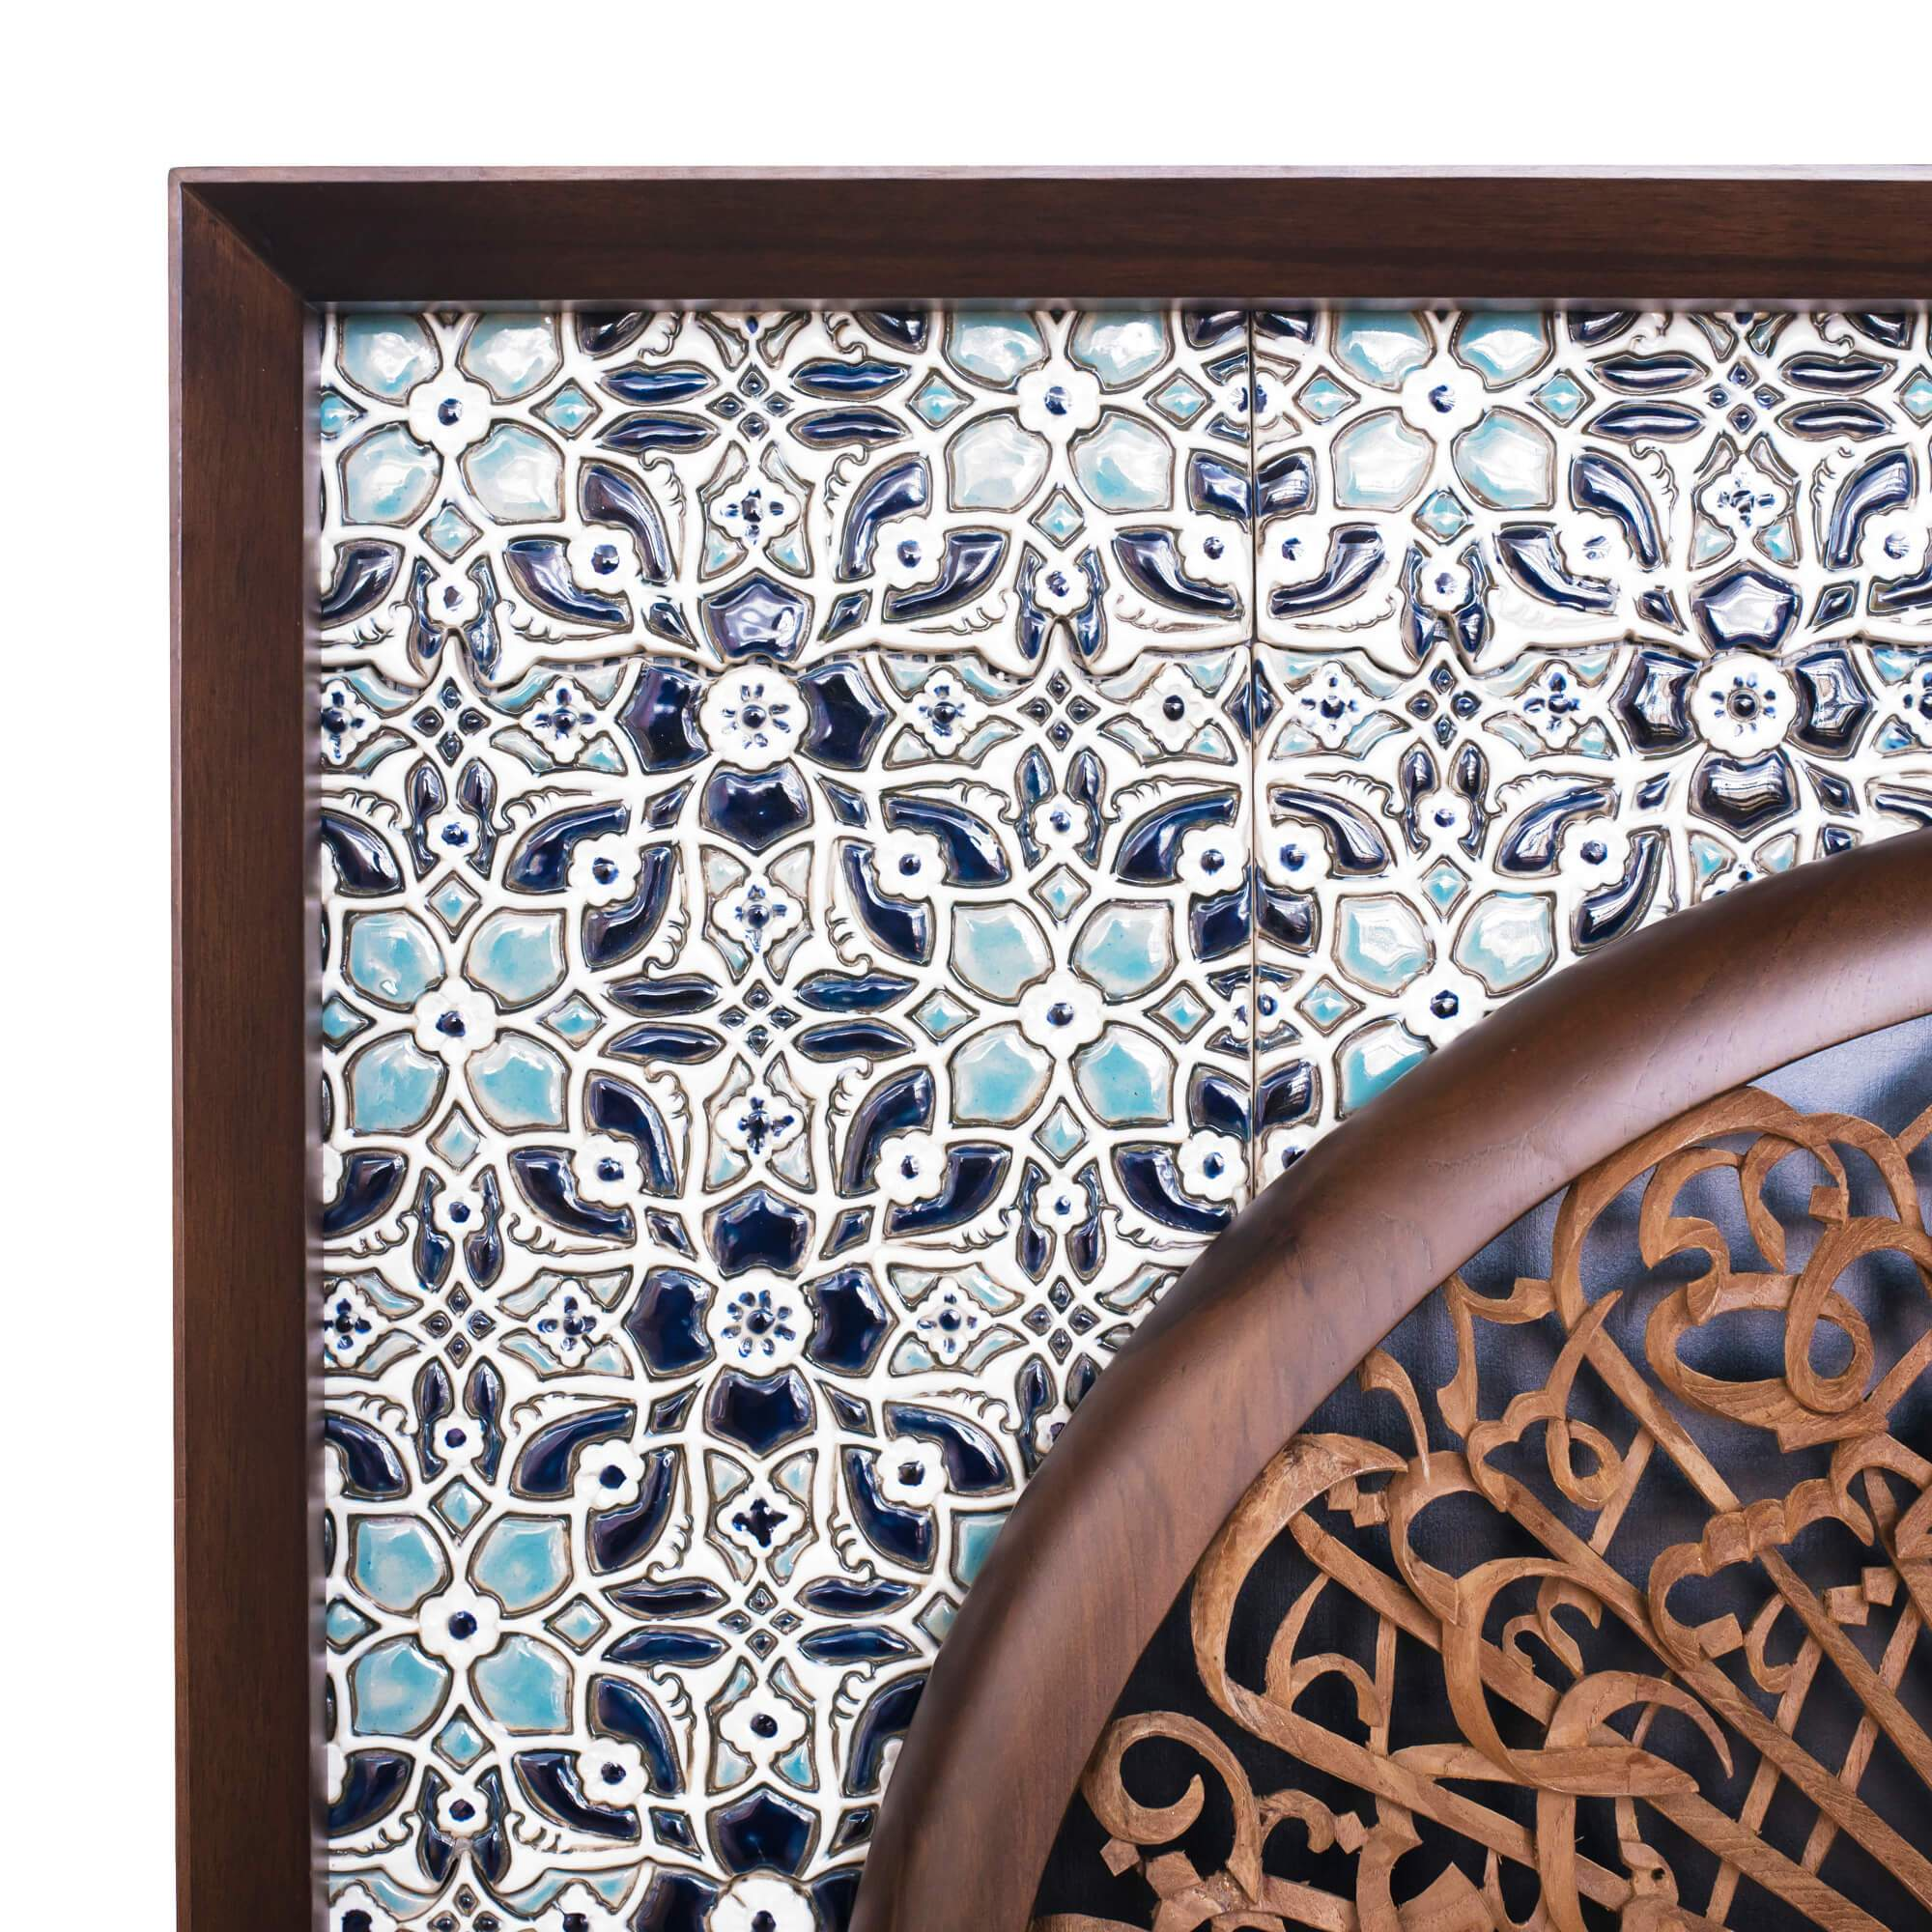 Al-Fatiha - Full 3D - 85cm Length x 85cm Height - Tile Frame 3 - Mahajati